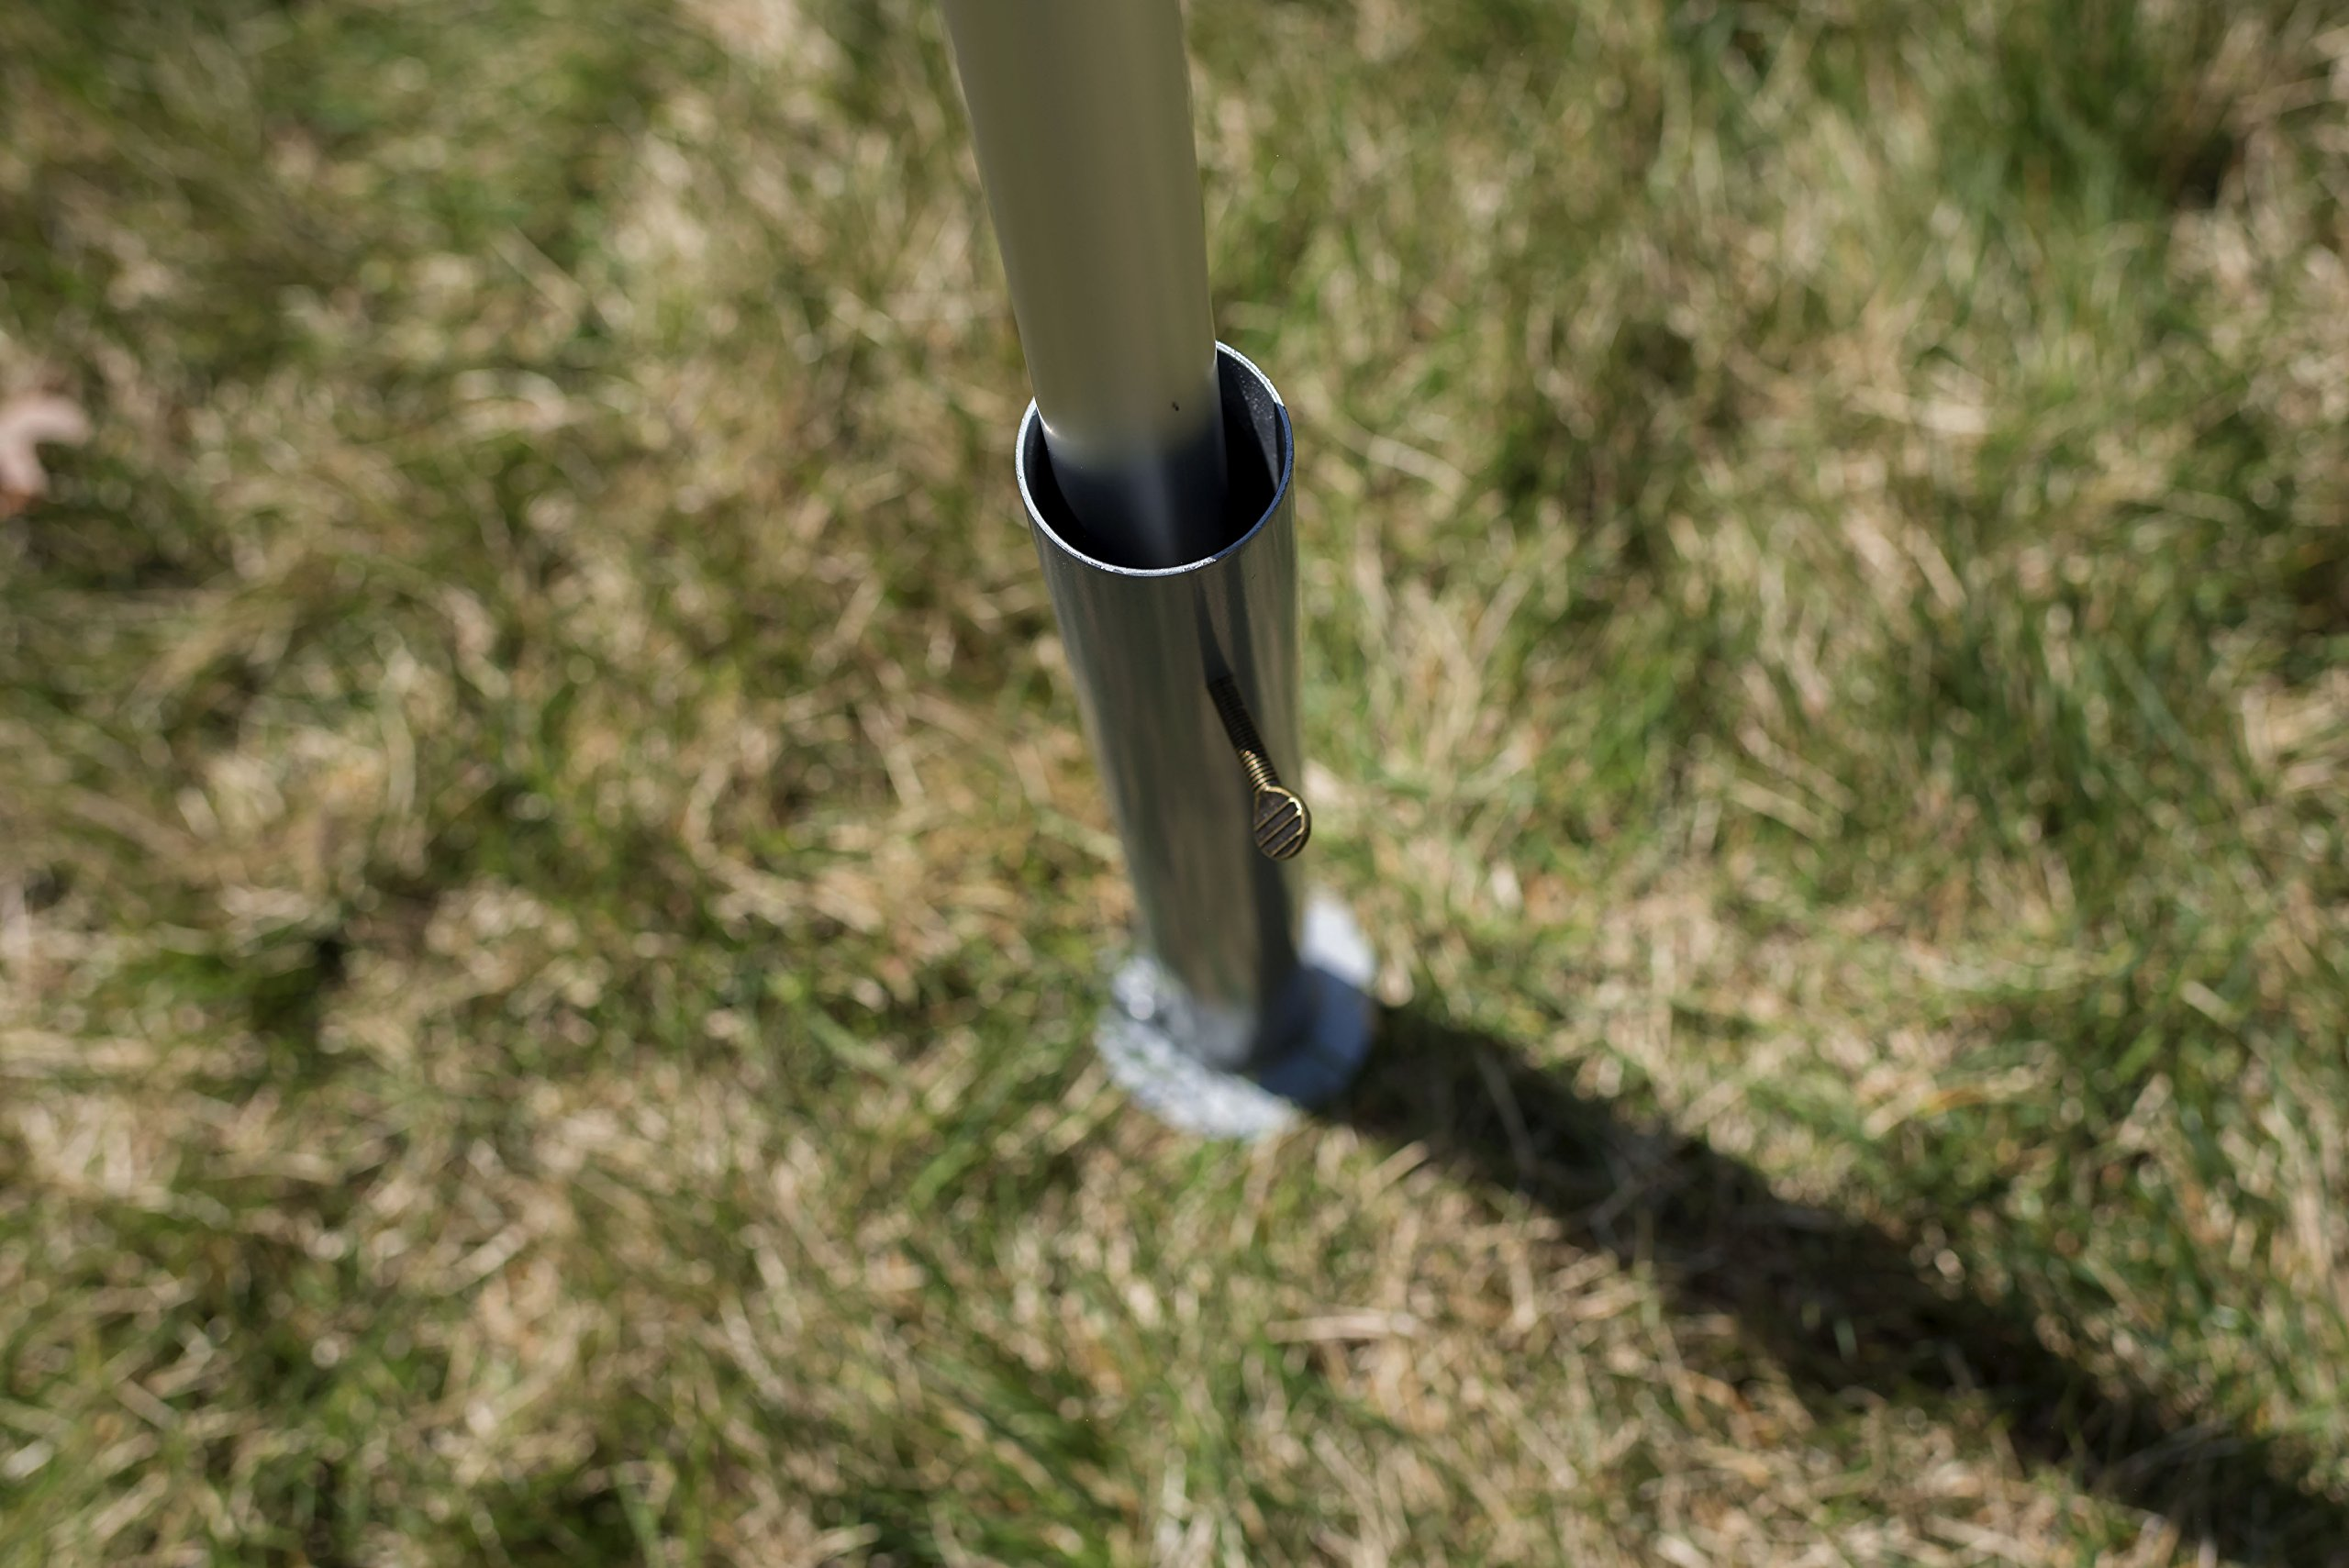 Flagpole-To-Go Ground Mount for Portable Flagpole by Flagpole-To-Go (Image #1)